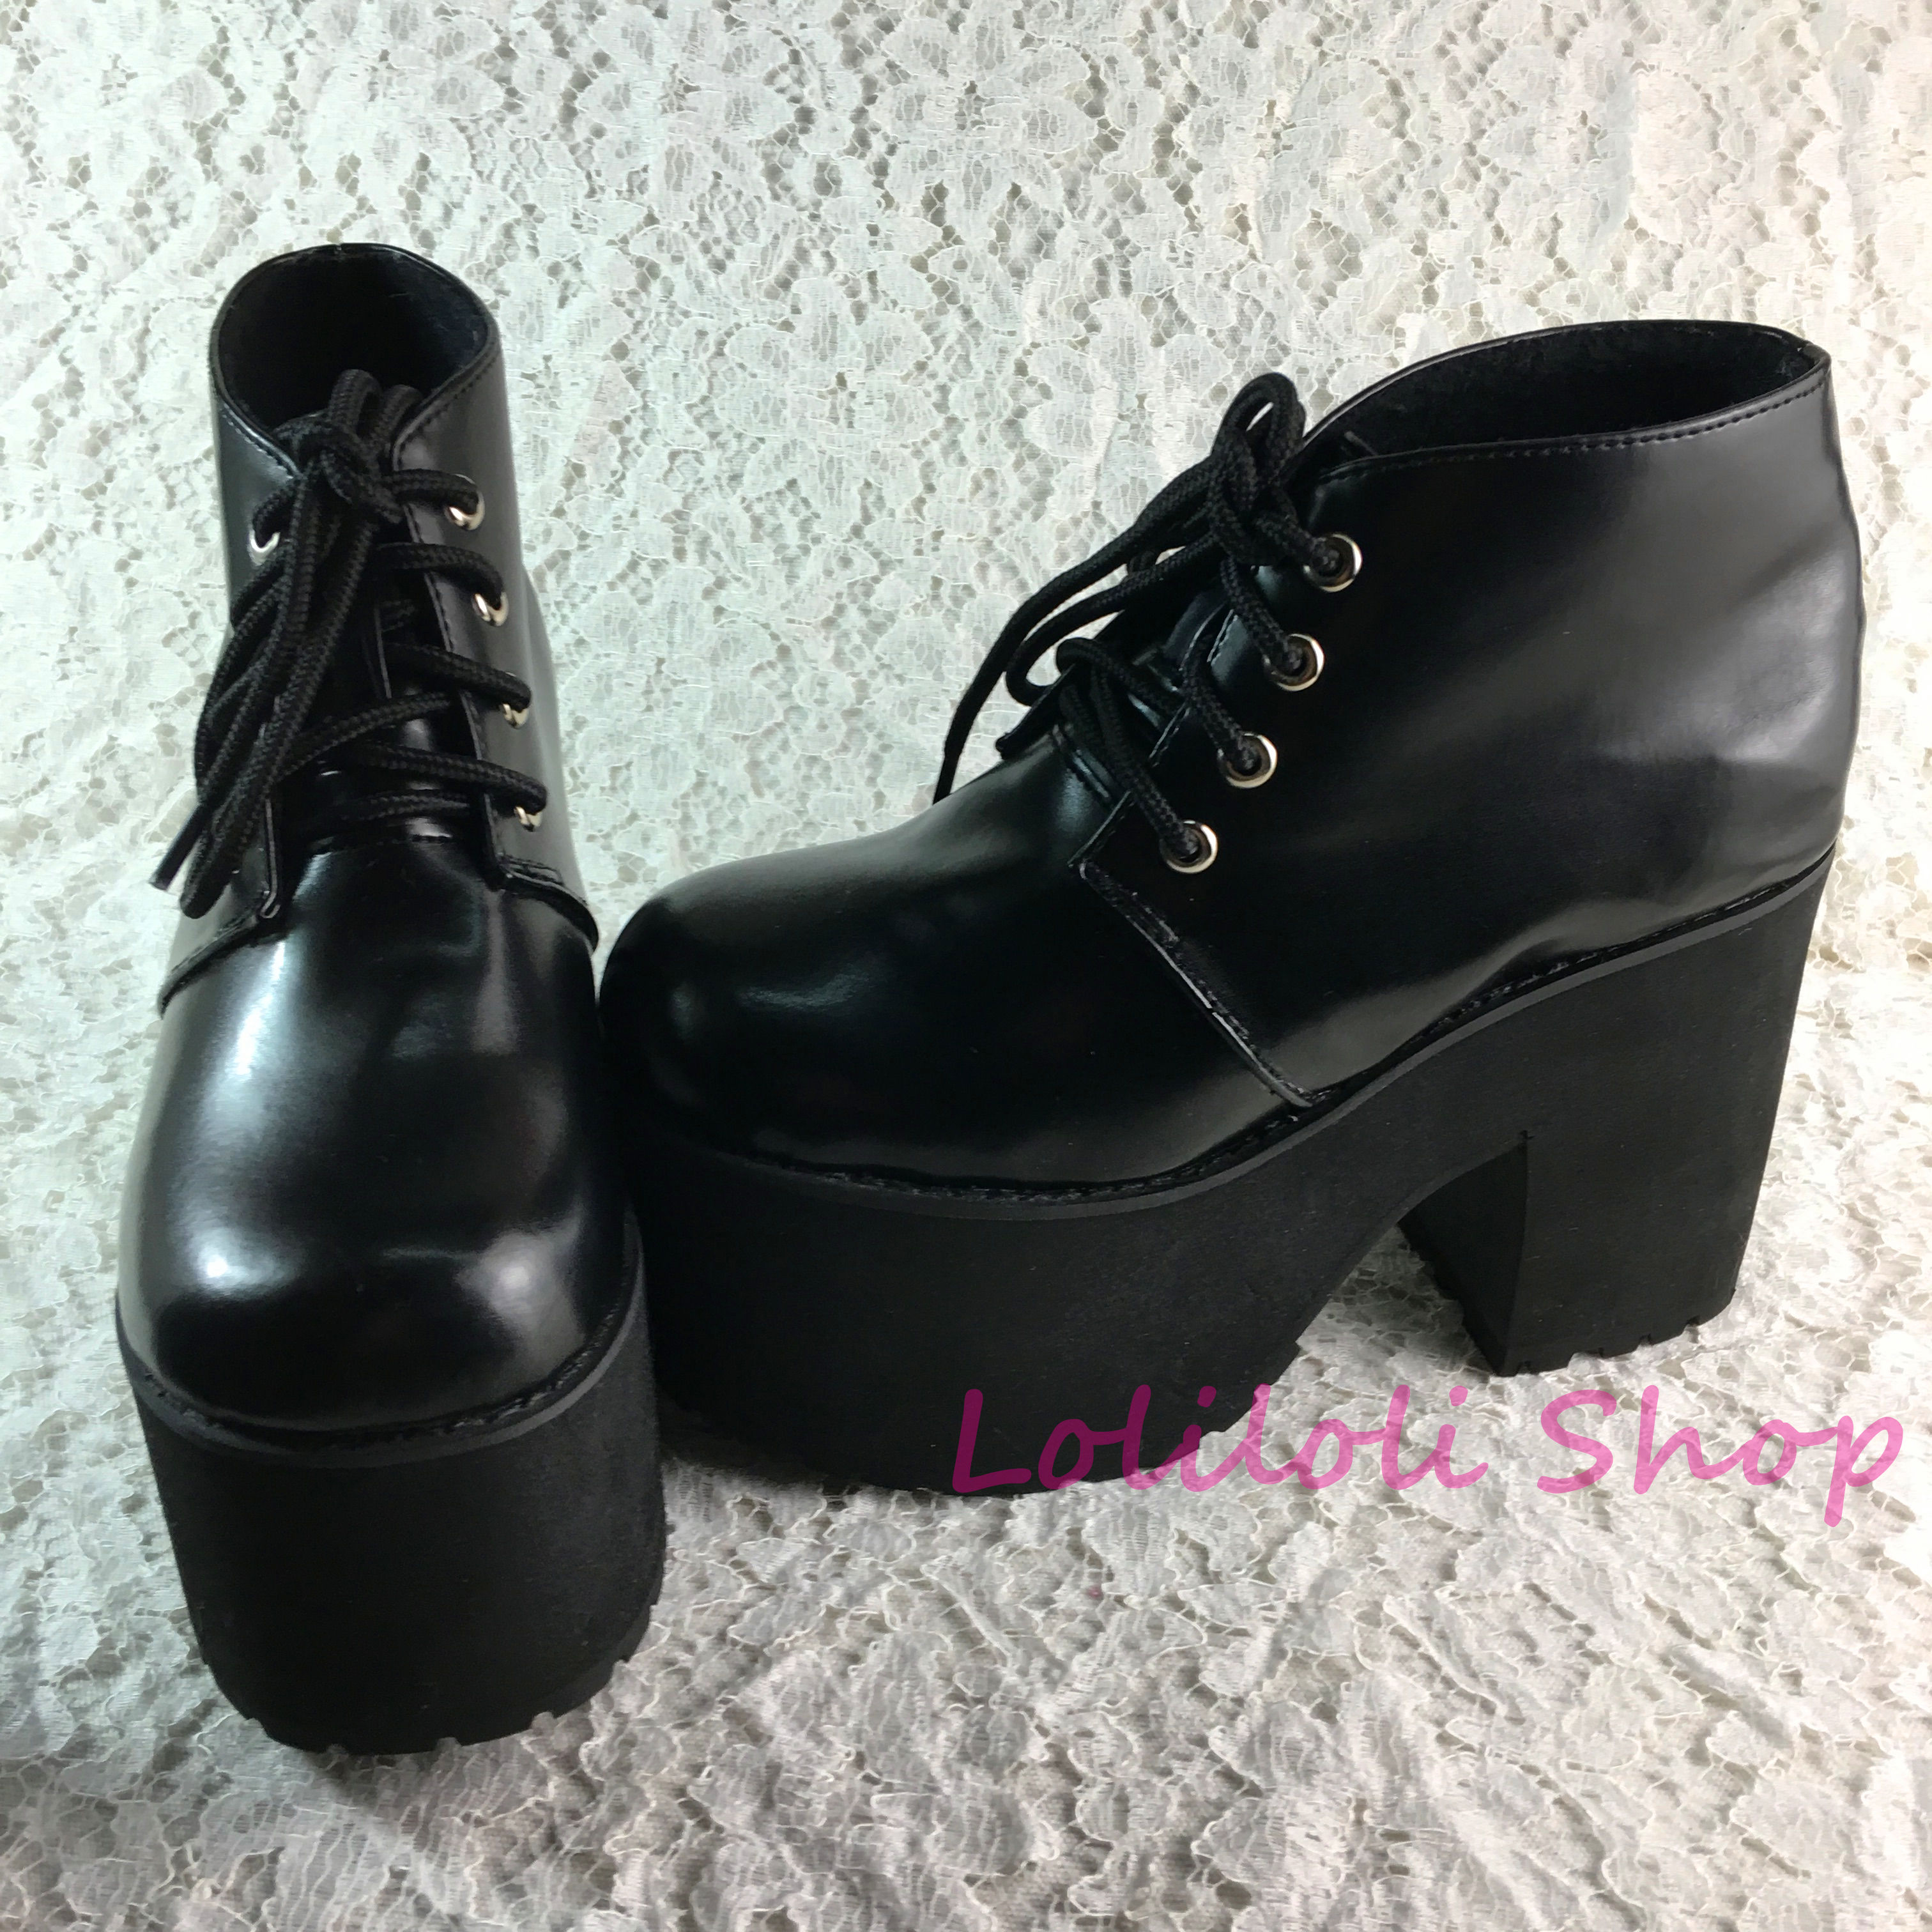 Princess sweet gothic lolita shoes Loliloliyoyo antaina Japanese design black bright skin cross lacing thick heel shoes 4171s